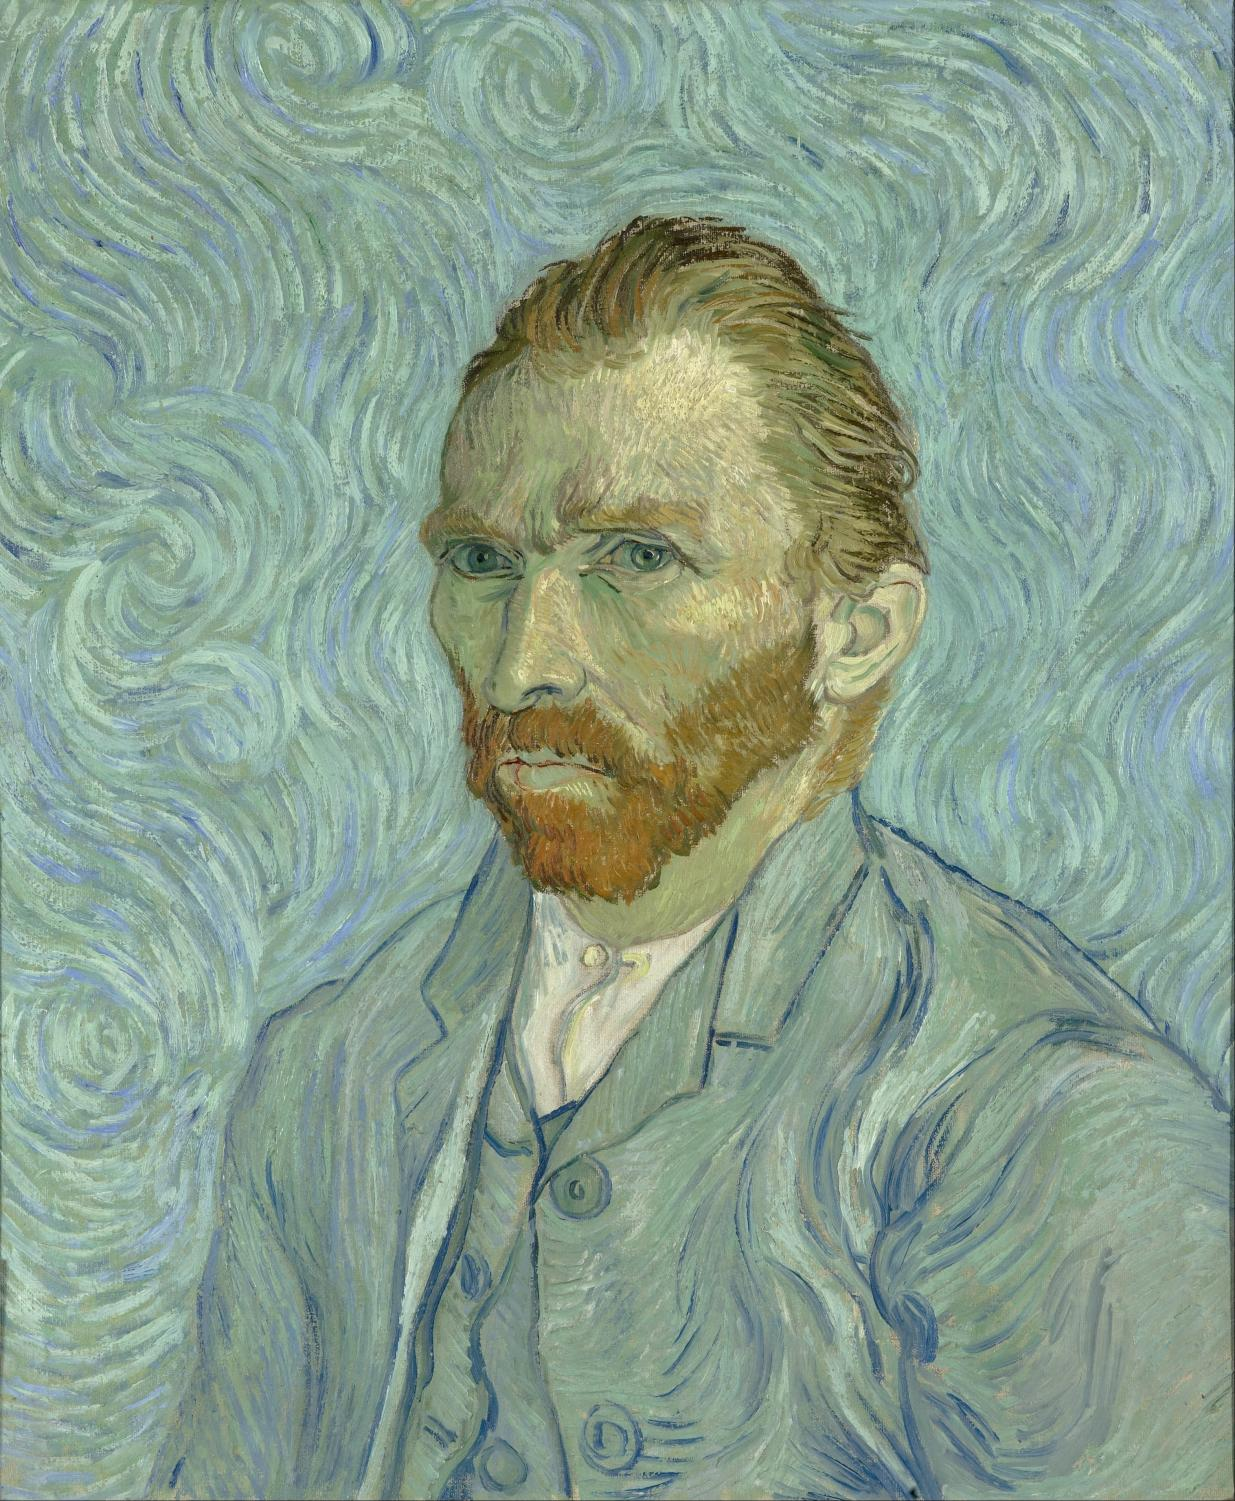 Vincent Van Gogh is one of the most famous examples of a starving artist by today's definition. https://creativecommons.org/licenses/by/2.0/